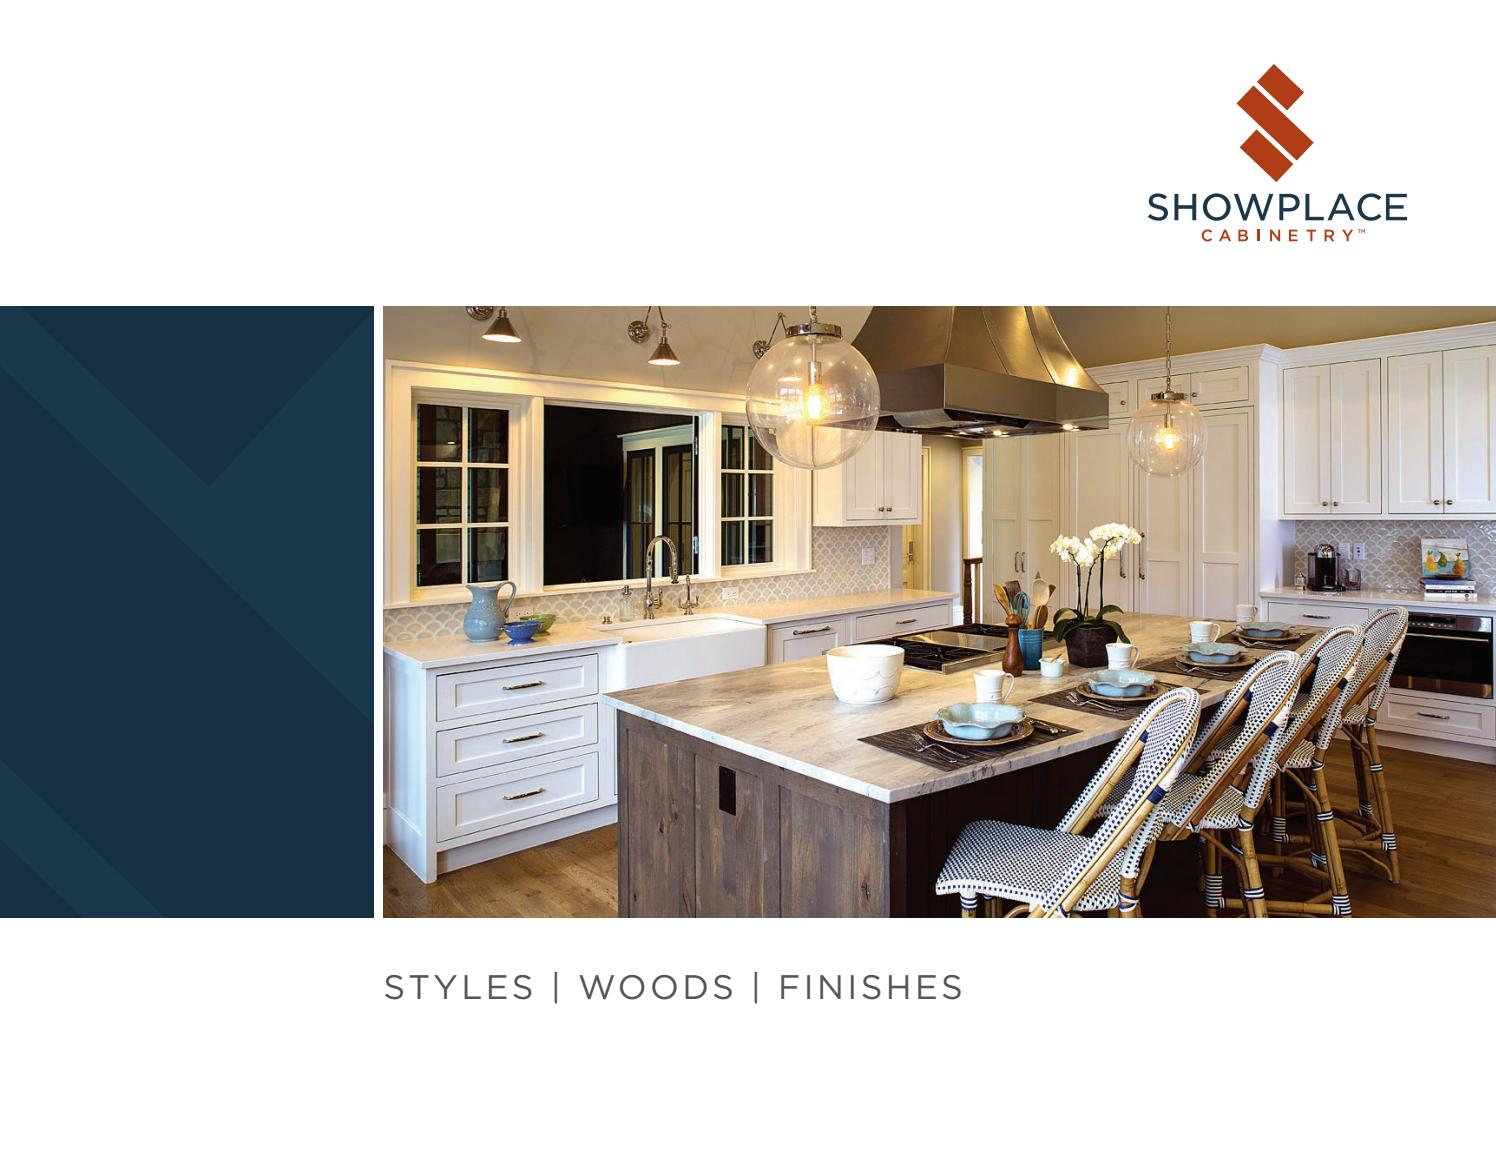 Showplace Cabinetry Styles, Woods U0026 Finishes By Showplace Wood Products    Issuu